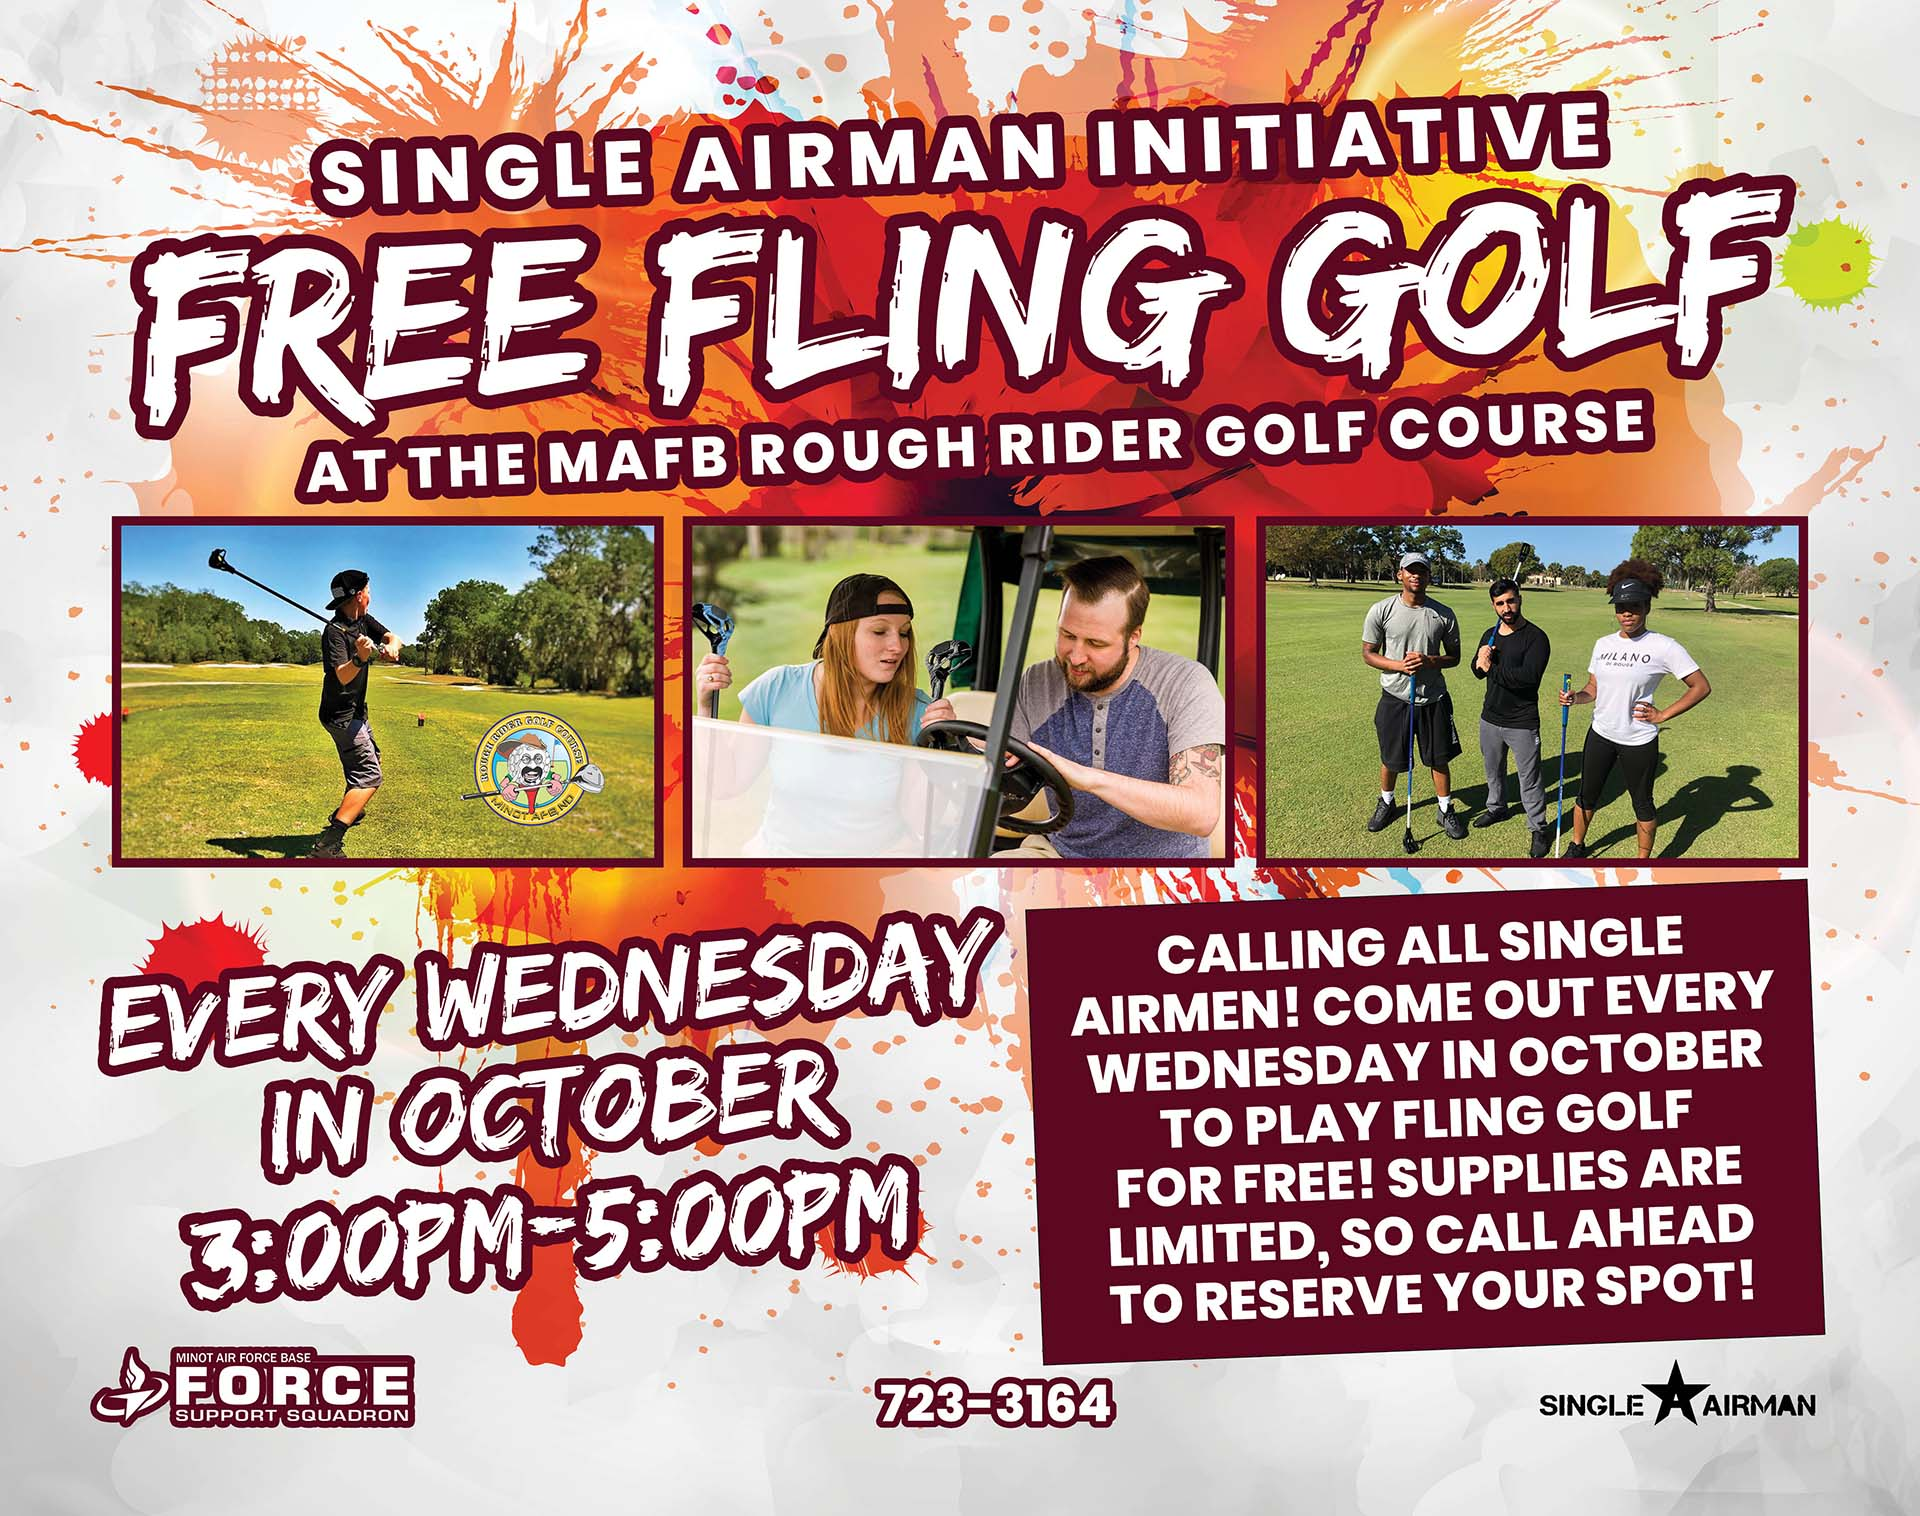 Single Airman Free Fling Golf